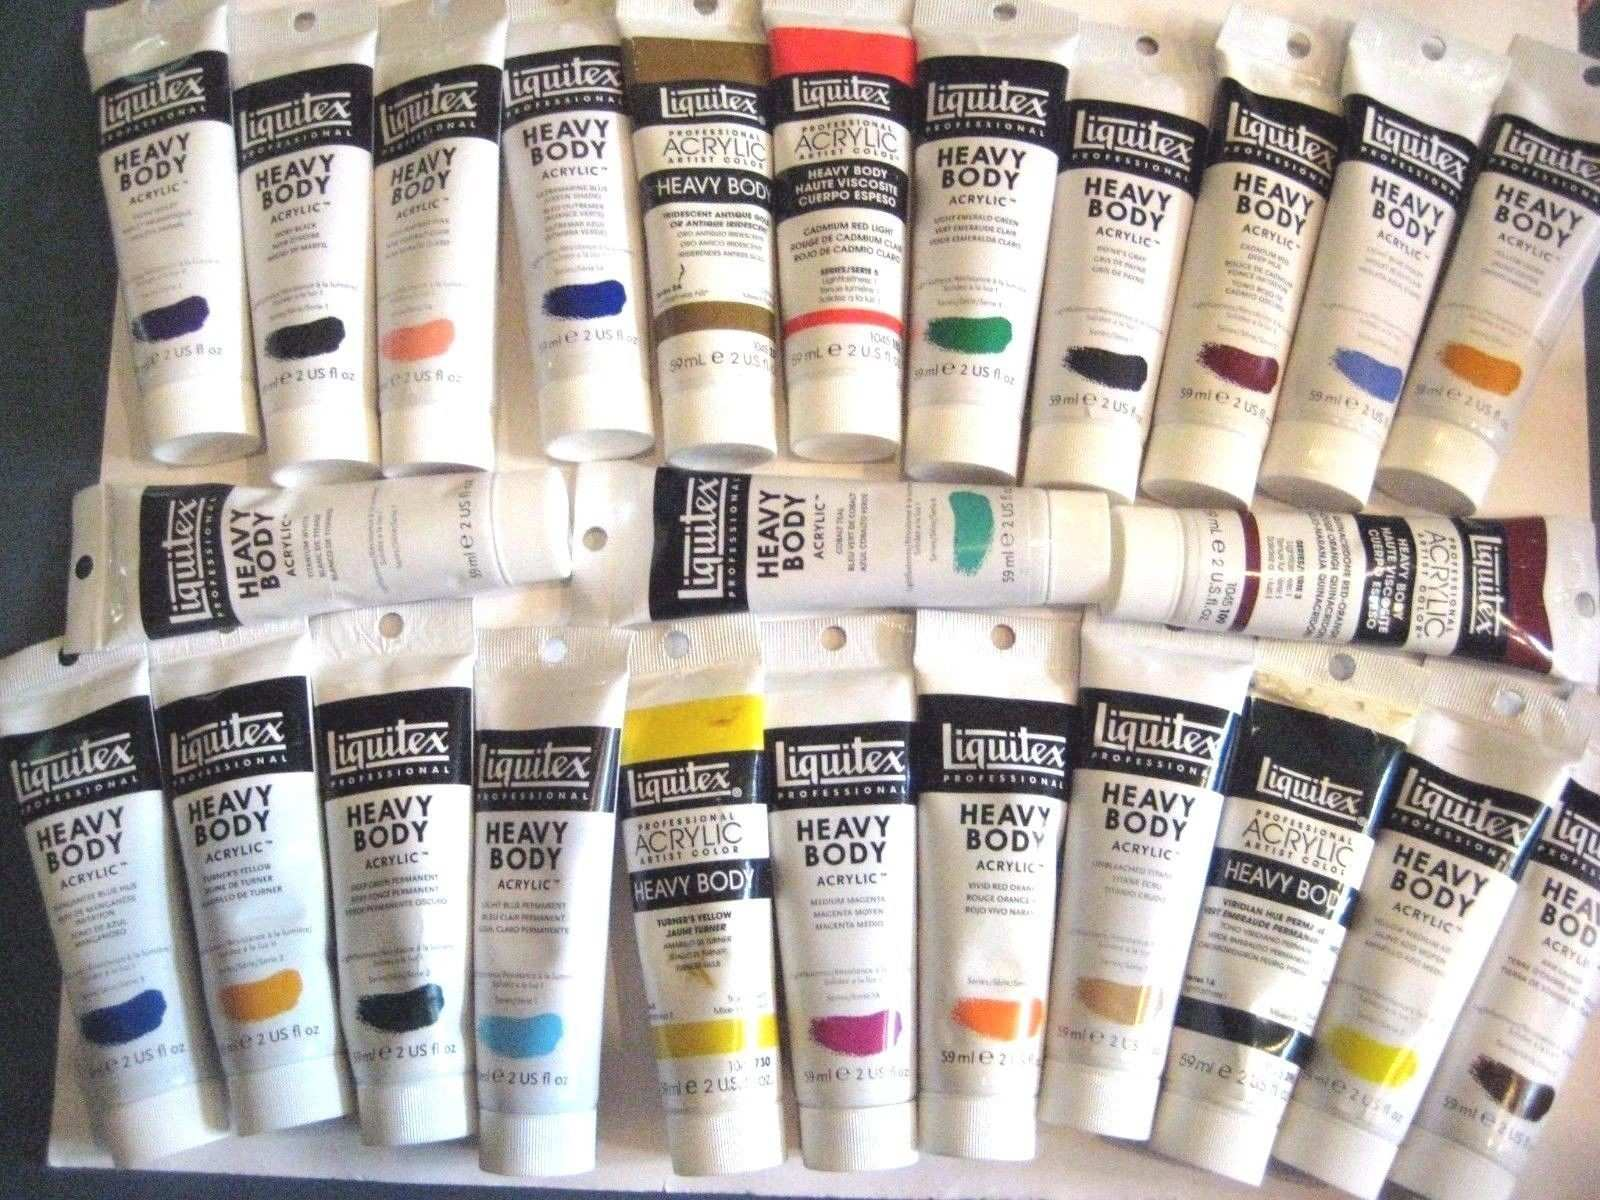 Acrylic Paint Liquitex Acrylic Heavy Body Paint Big Lot 25